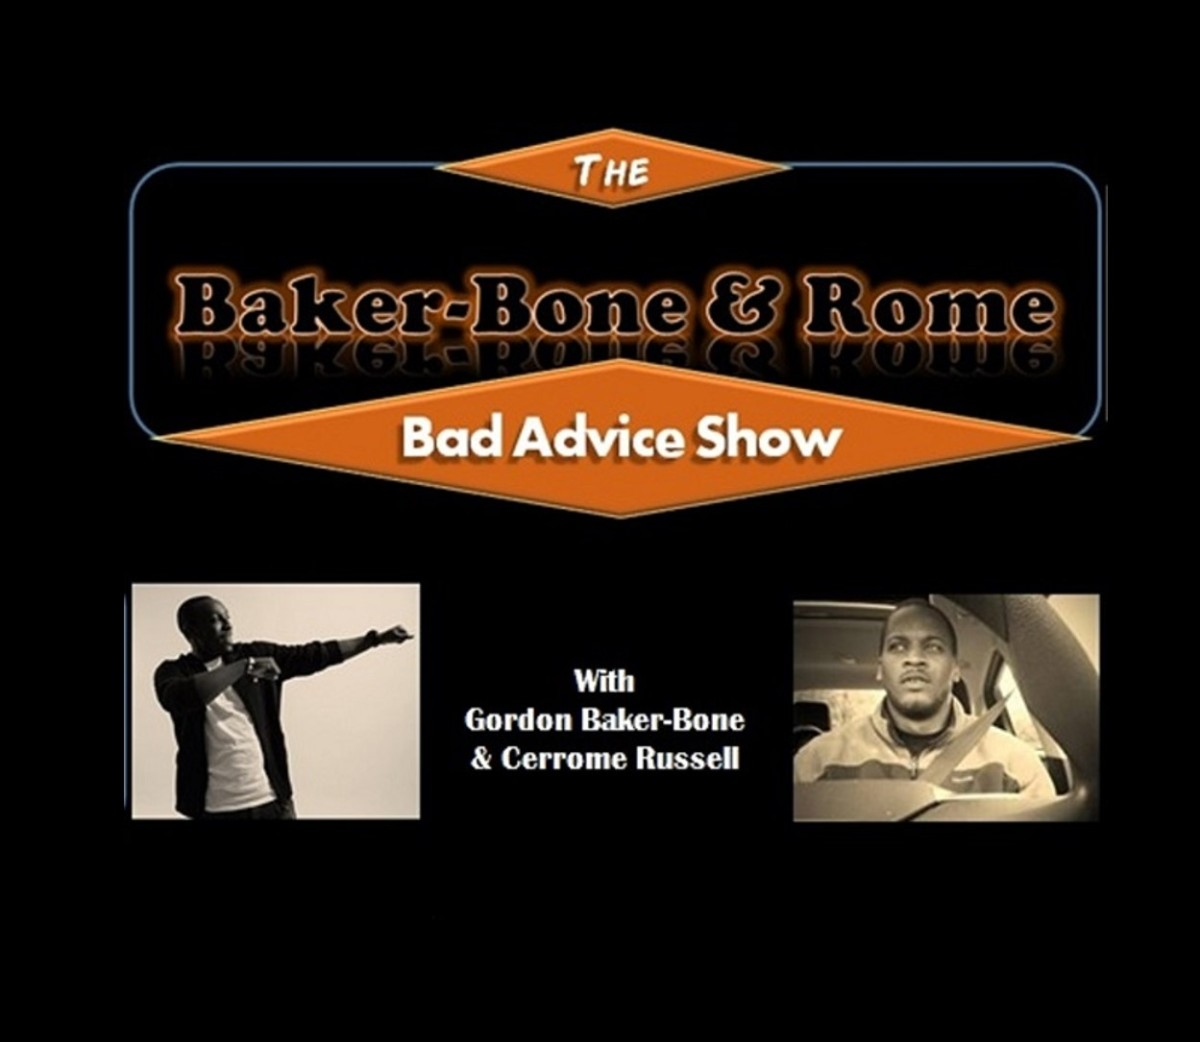 Bad Advice Show - Gordon's Pizza Journey